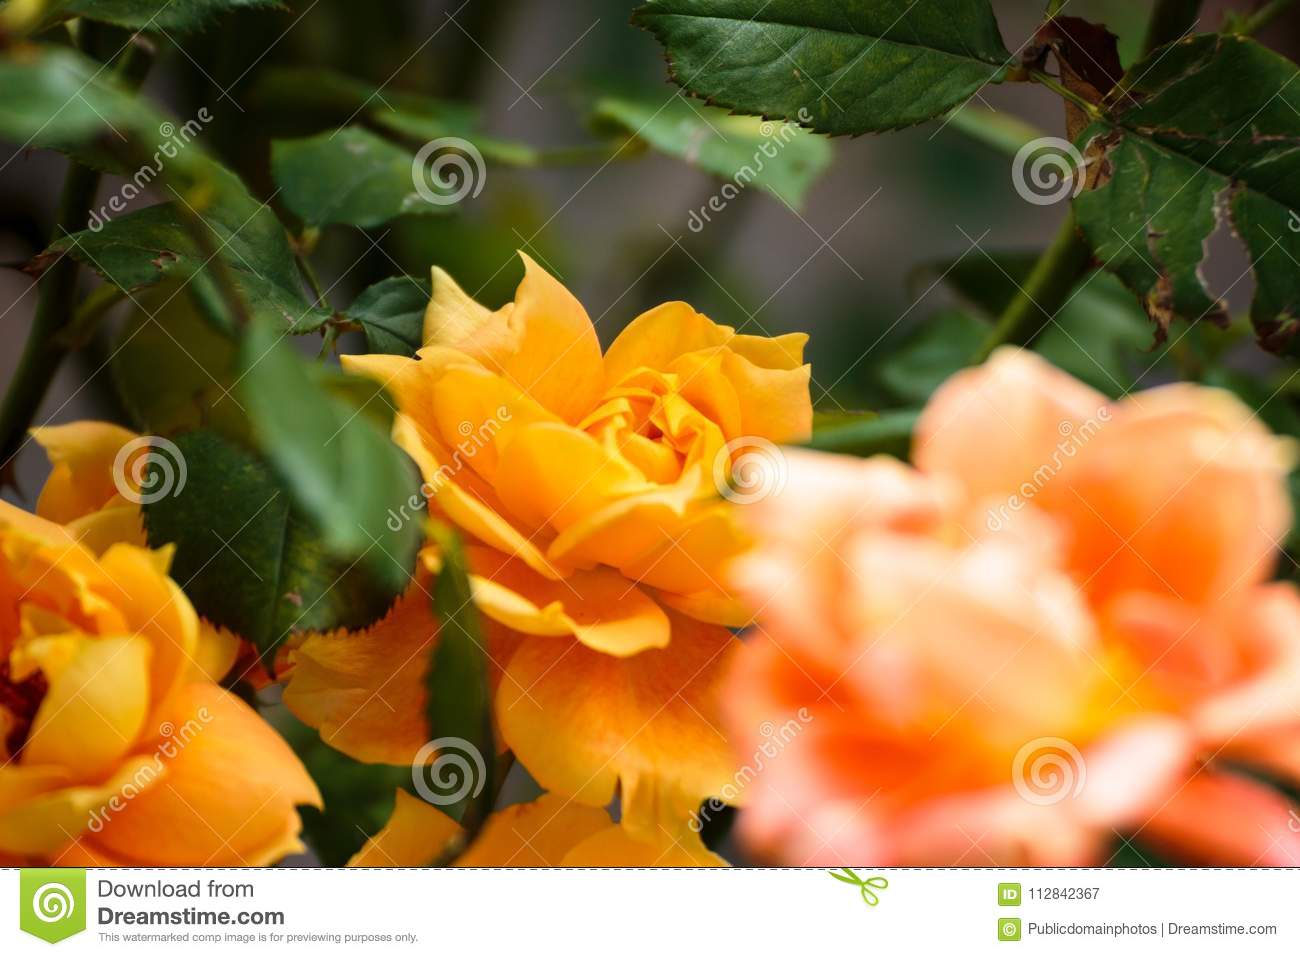 Free Public Domain Cc0 Image Flower Yellow Rose Family Rose